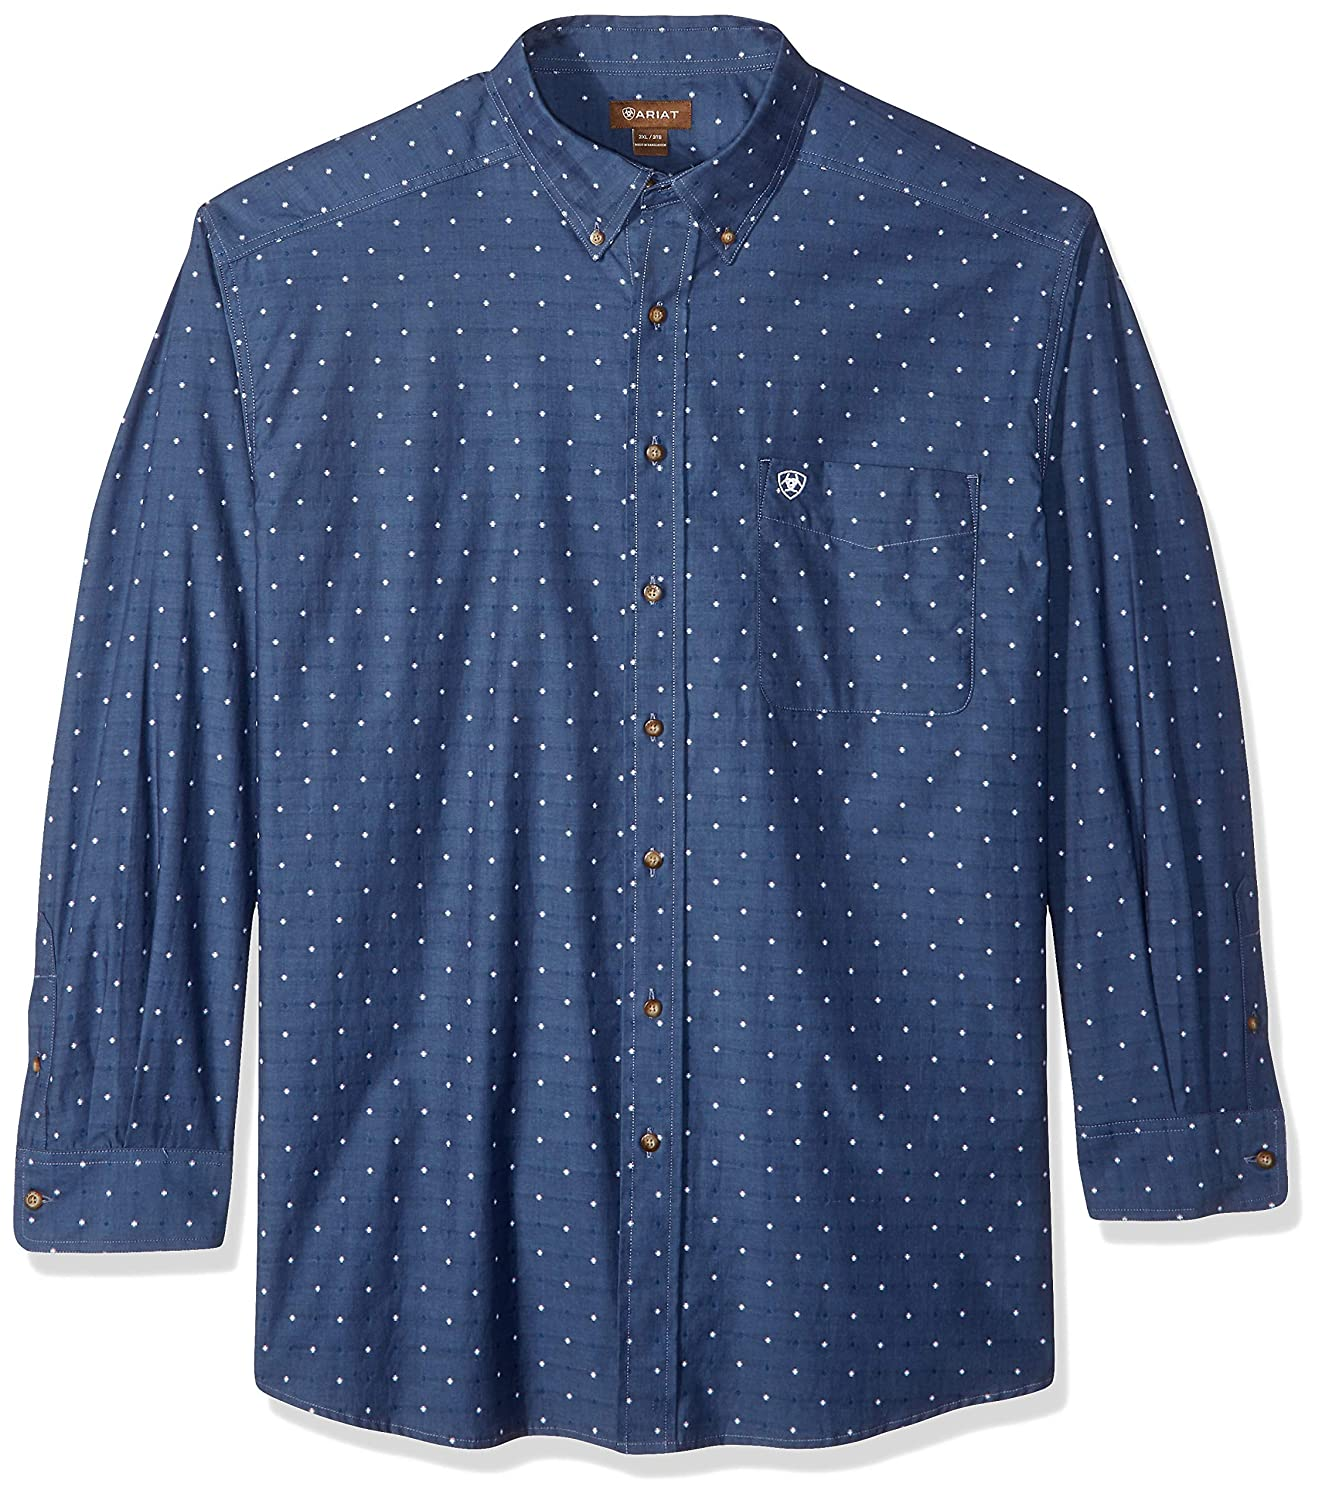 ARIAT Mens Classic Fit Long Sleeve